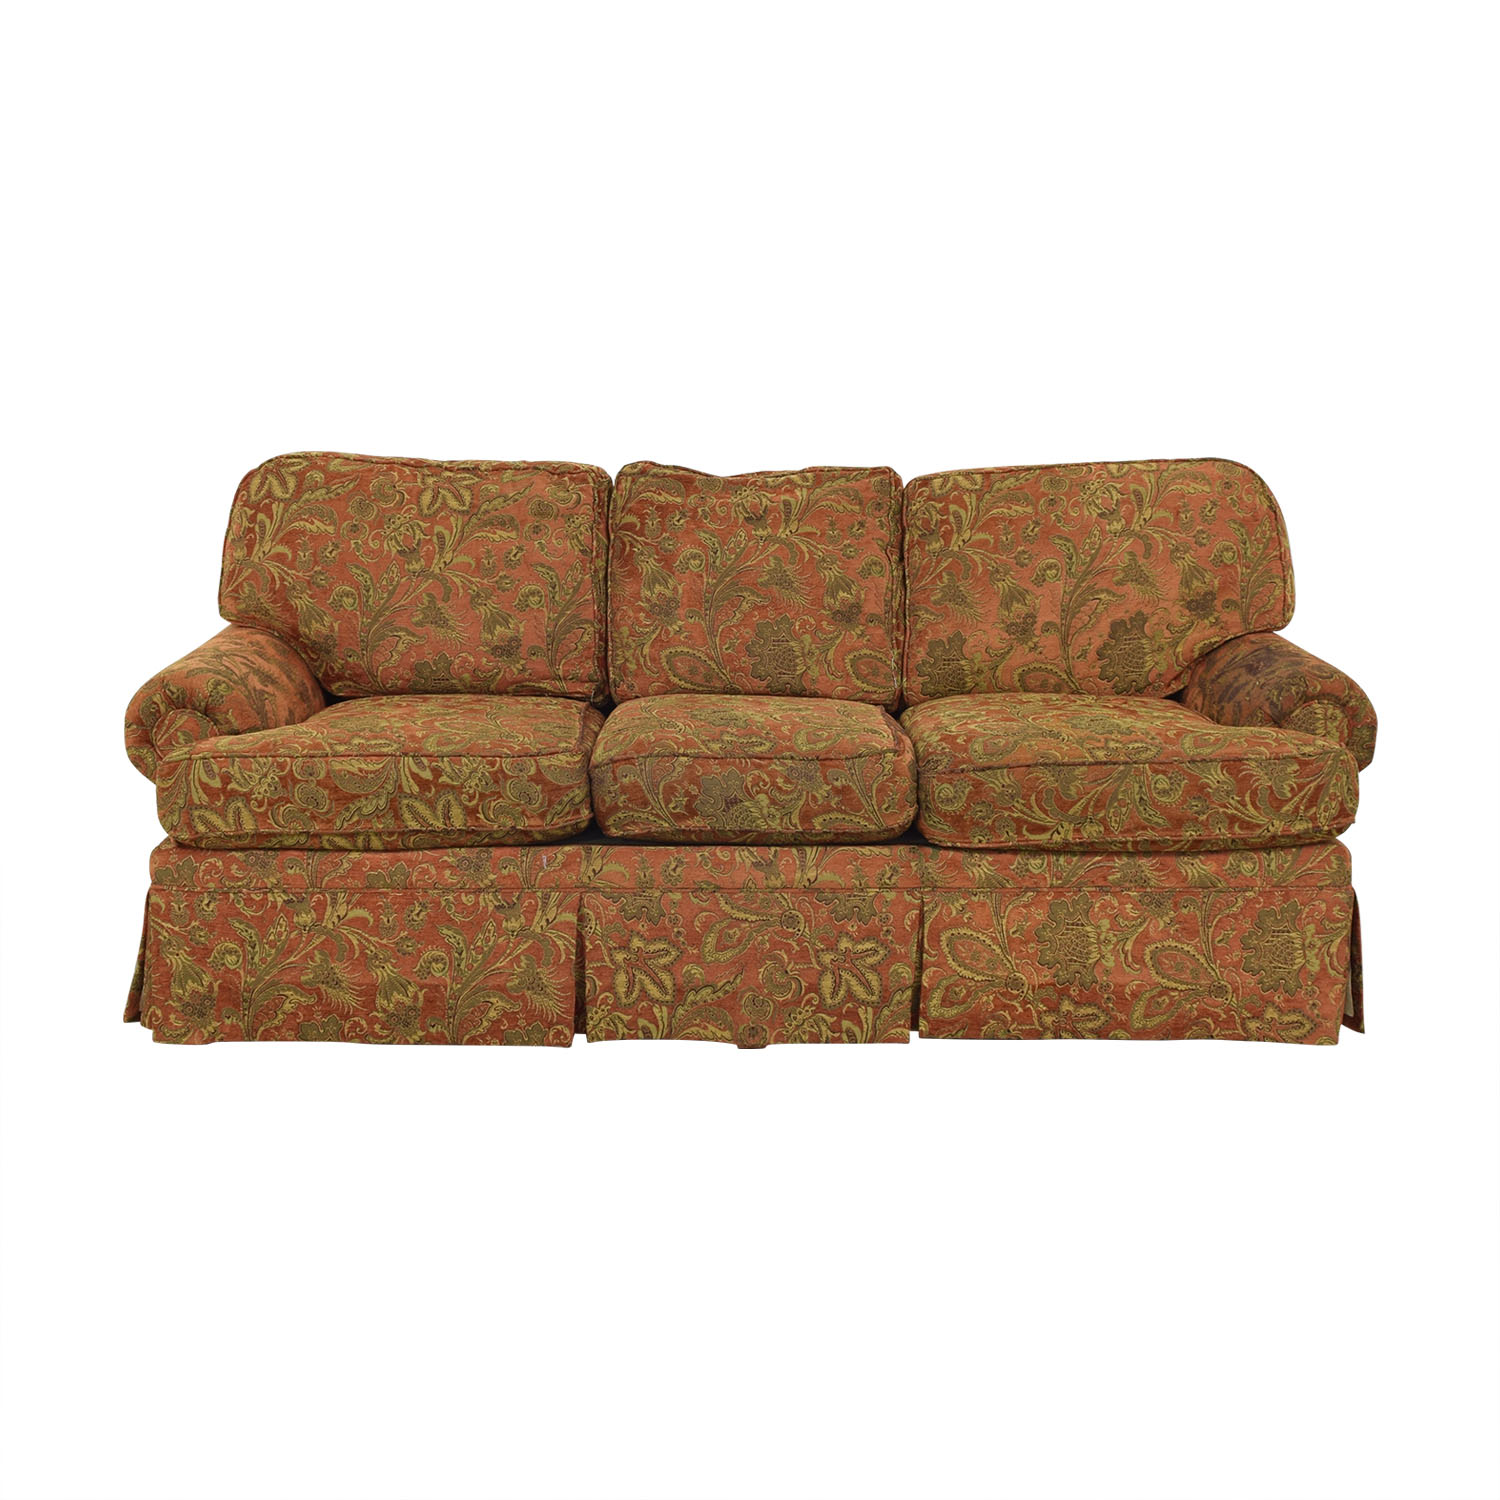 Walter E. Smithe Walter E. Smithe Three Cushion Sofa price